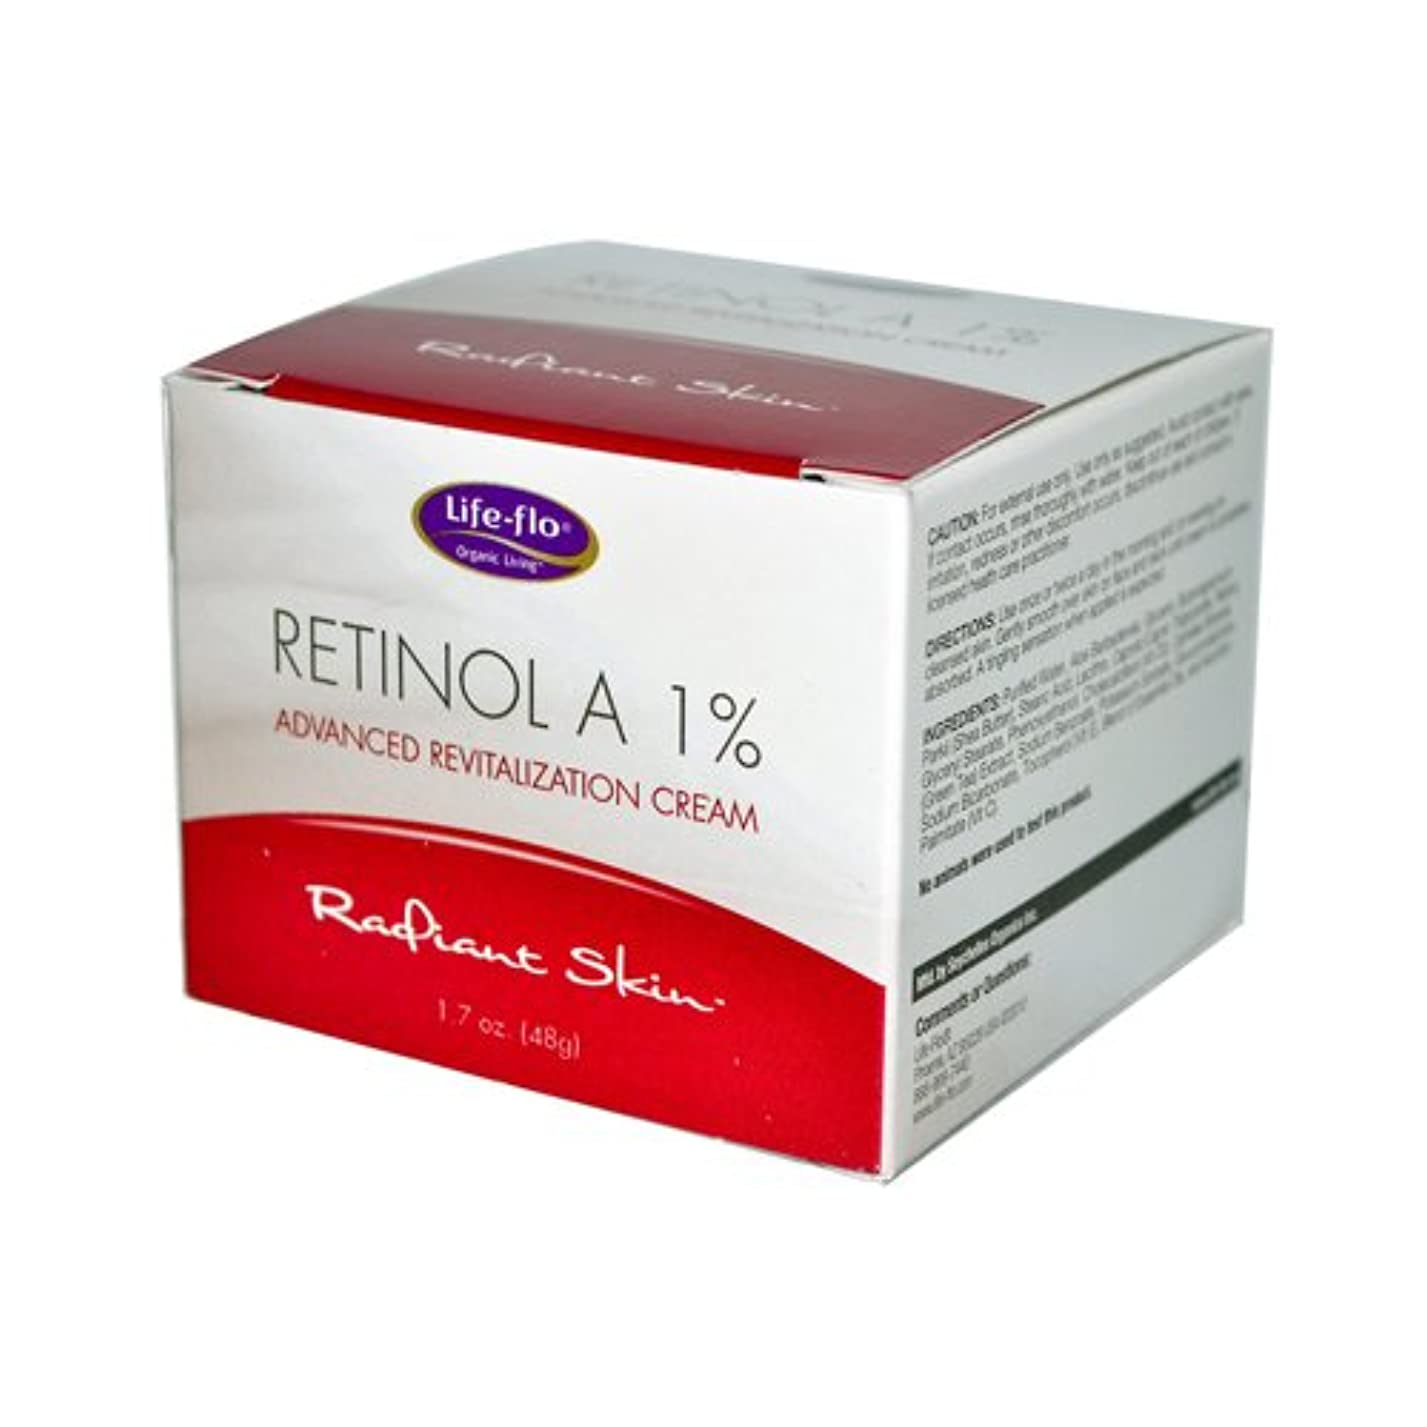 本体まだら崇拝する海外直送品 Life-Flo Retinol A 1% Advanced Revitalization Cream, 1.7 oz